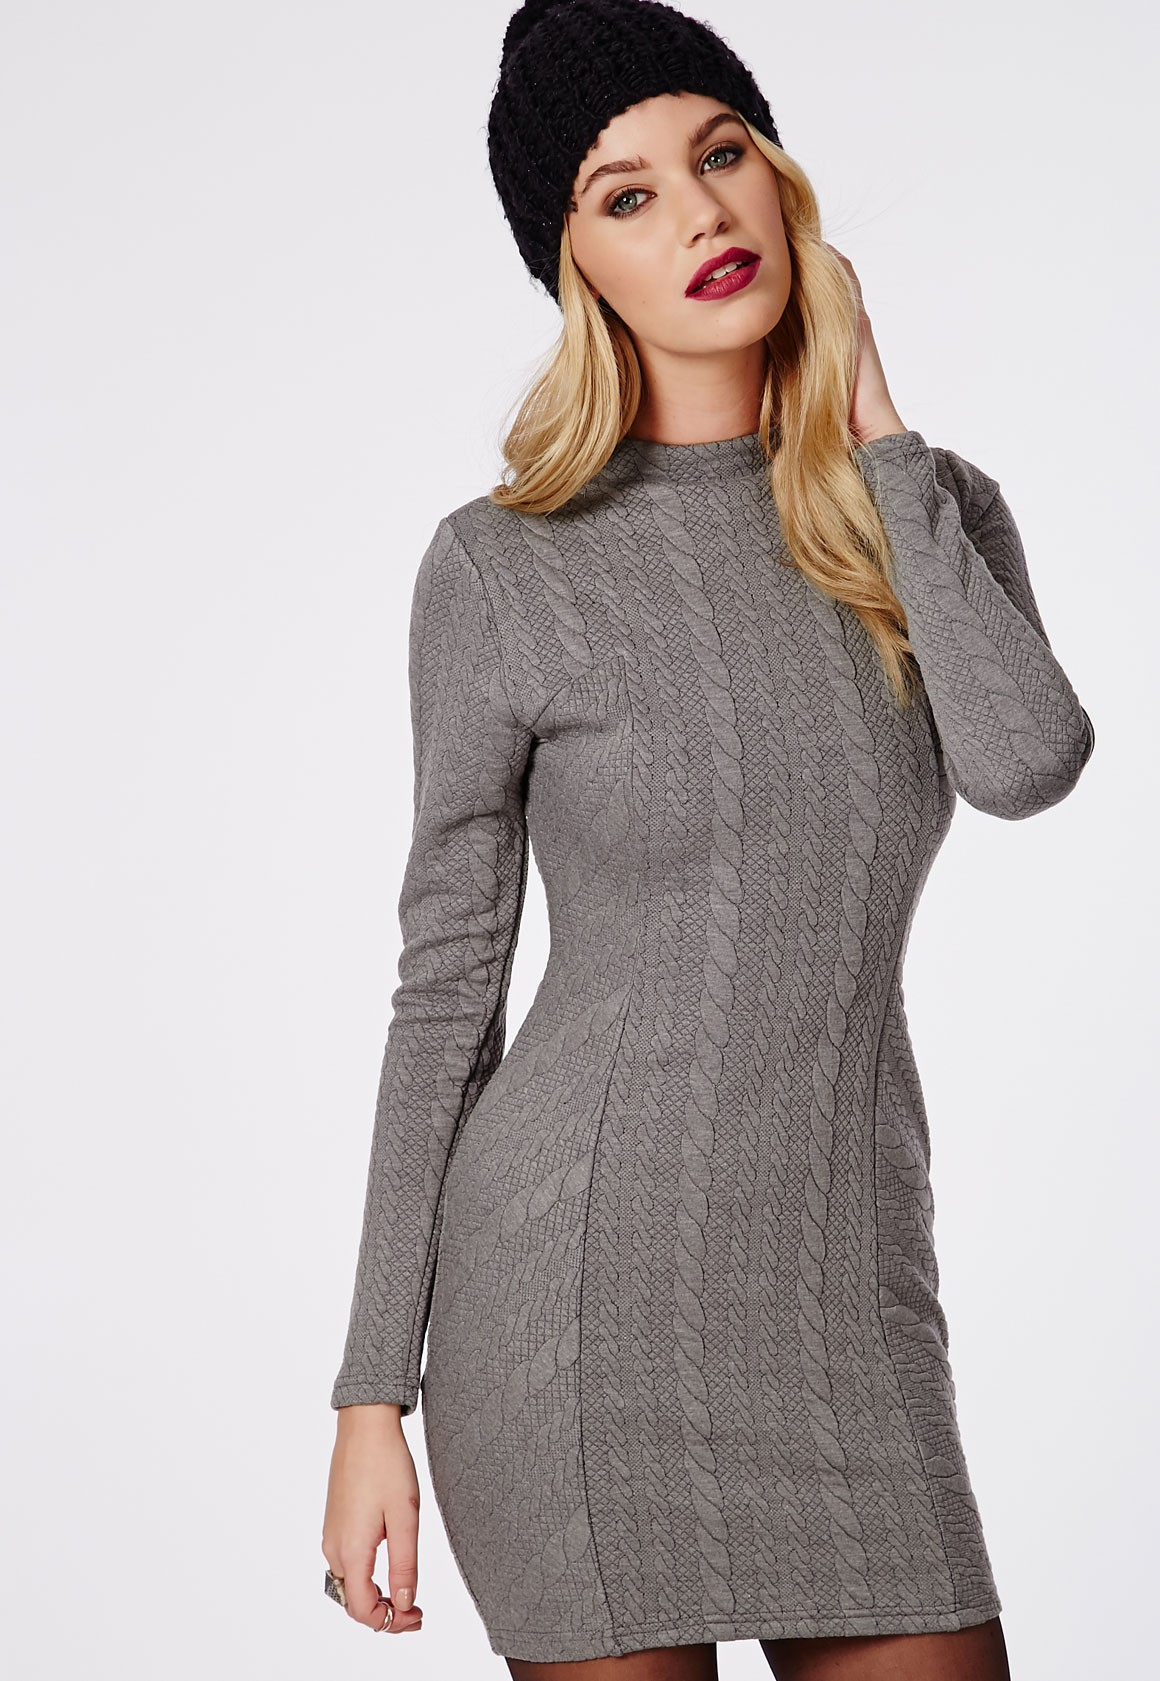 Jumper Dresses Become The Aesthetic You Dream Of Carey